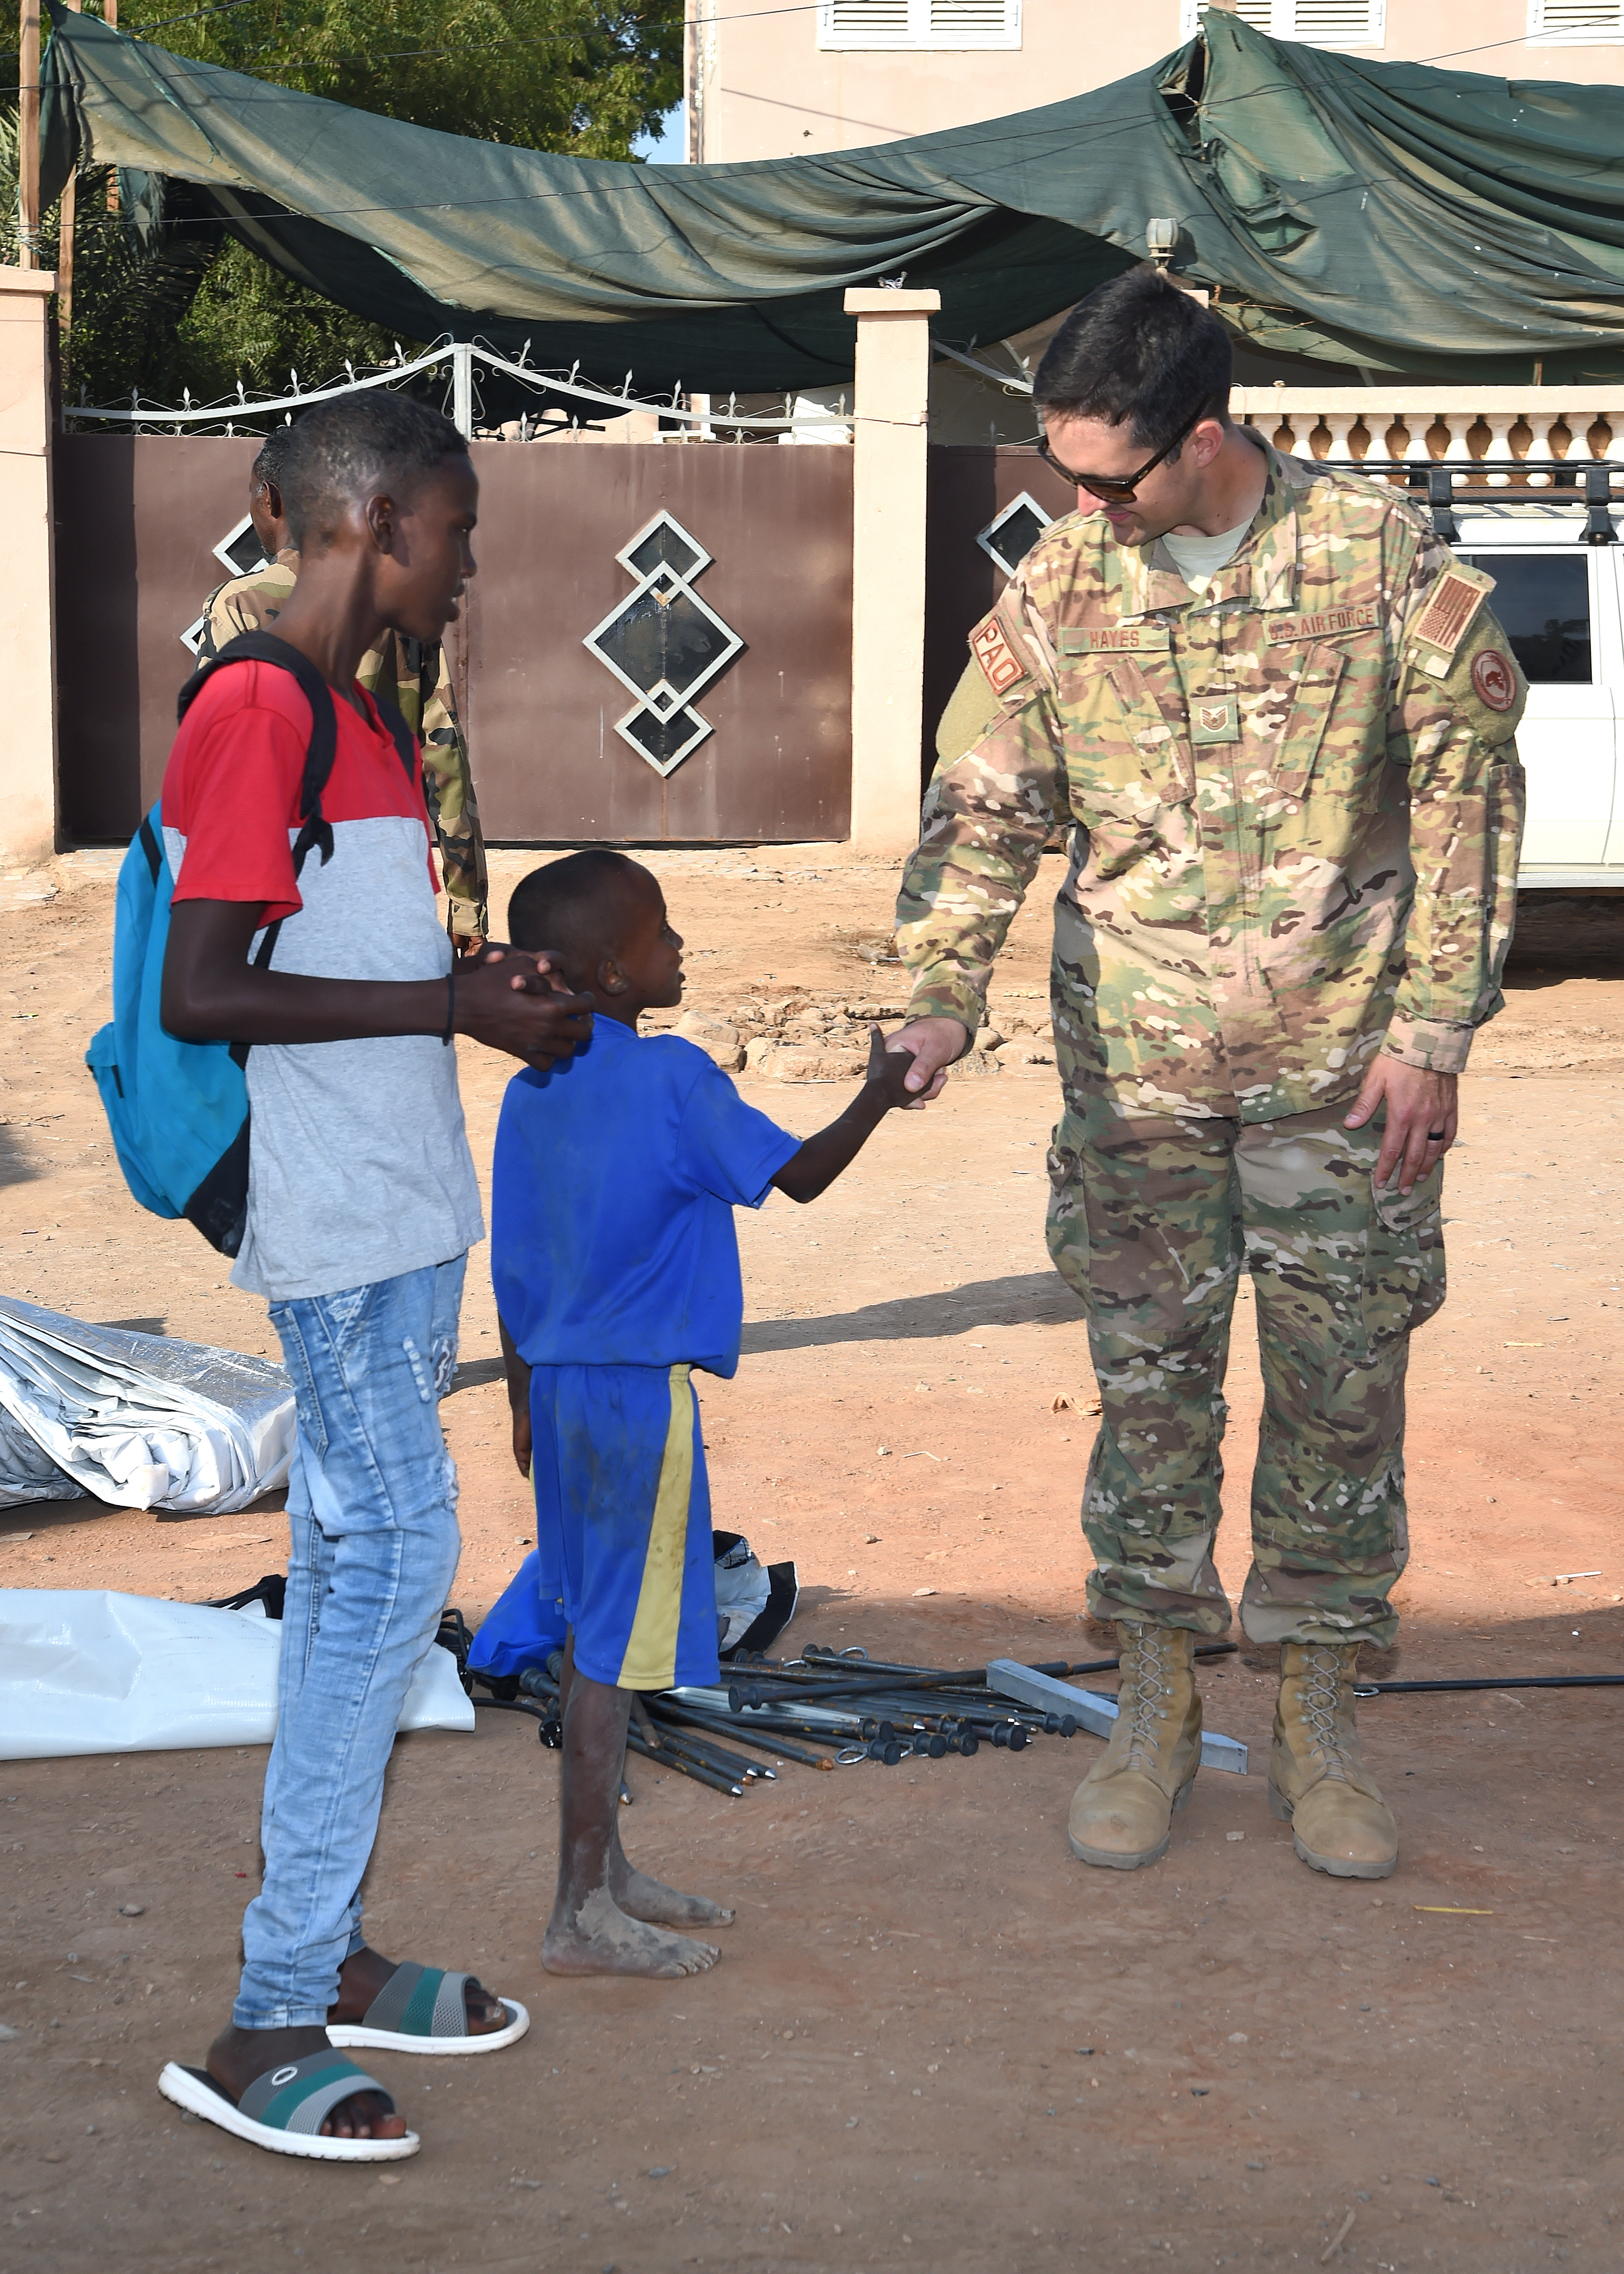 U.S. Air Force Tech. Sgt. Benjamin Hayes, broadcast journalist with Combined Joint Task Force-Horn of Africa, greets children observing the construction of a modular shelter system by U.S. Navy and Djibouti Armed Forces personnel in downtown Djibouti, Feb. 27, 2017. The shelter was one of six donated by U.S. manufacturer Alaska Shelters through the Global Action Coalition, and will provide additional classroom space to the Association for the Development and Protection of Children in downtown Djibouti. (U.S. Air National Guard photo by Master Sgt. Paul Gorman)